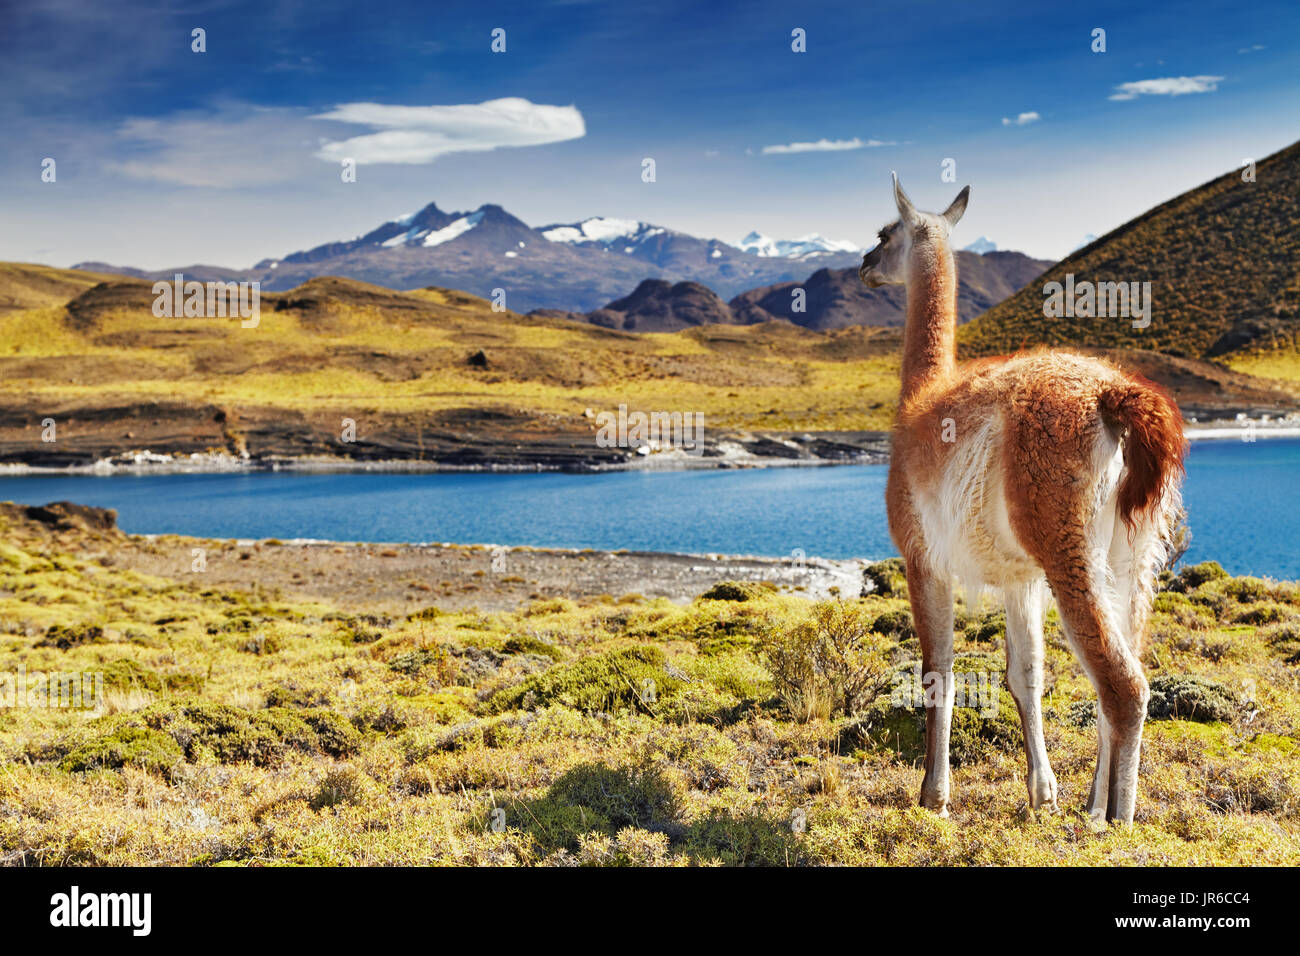 Guanako im Torres del Paine Nationalpark, Patagonien, Chile Stockbild